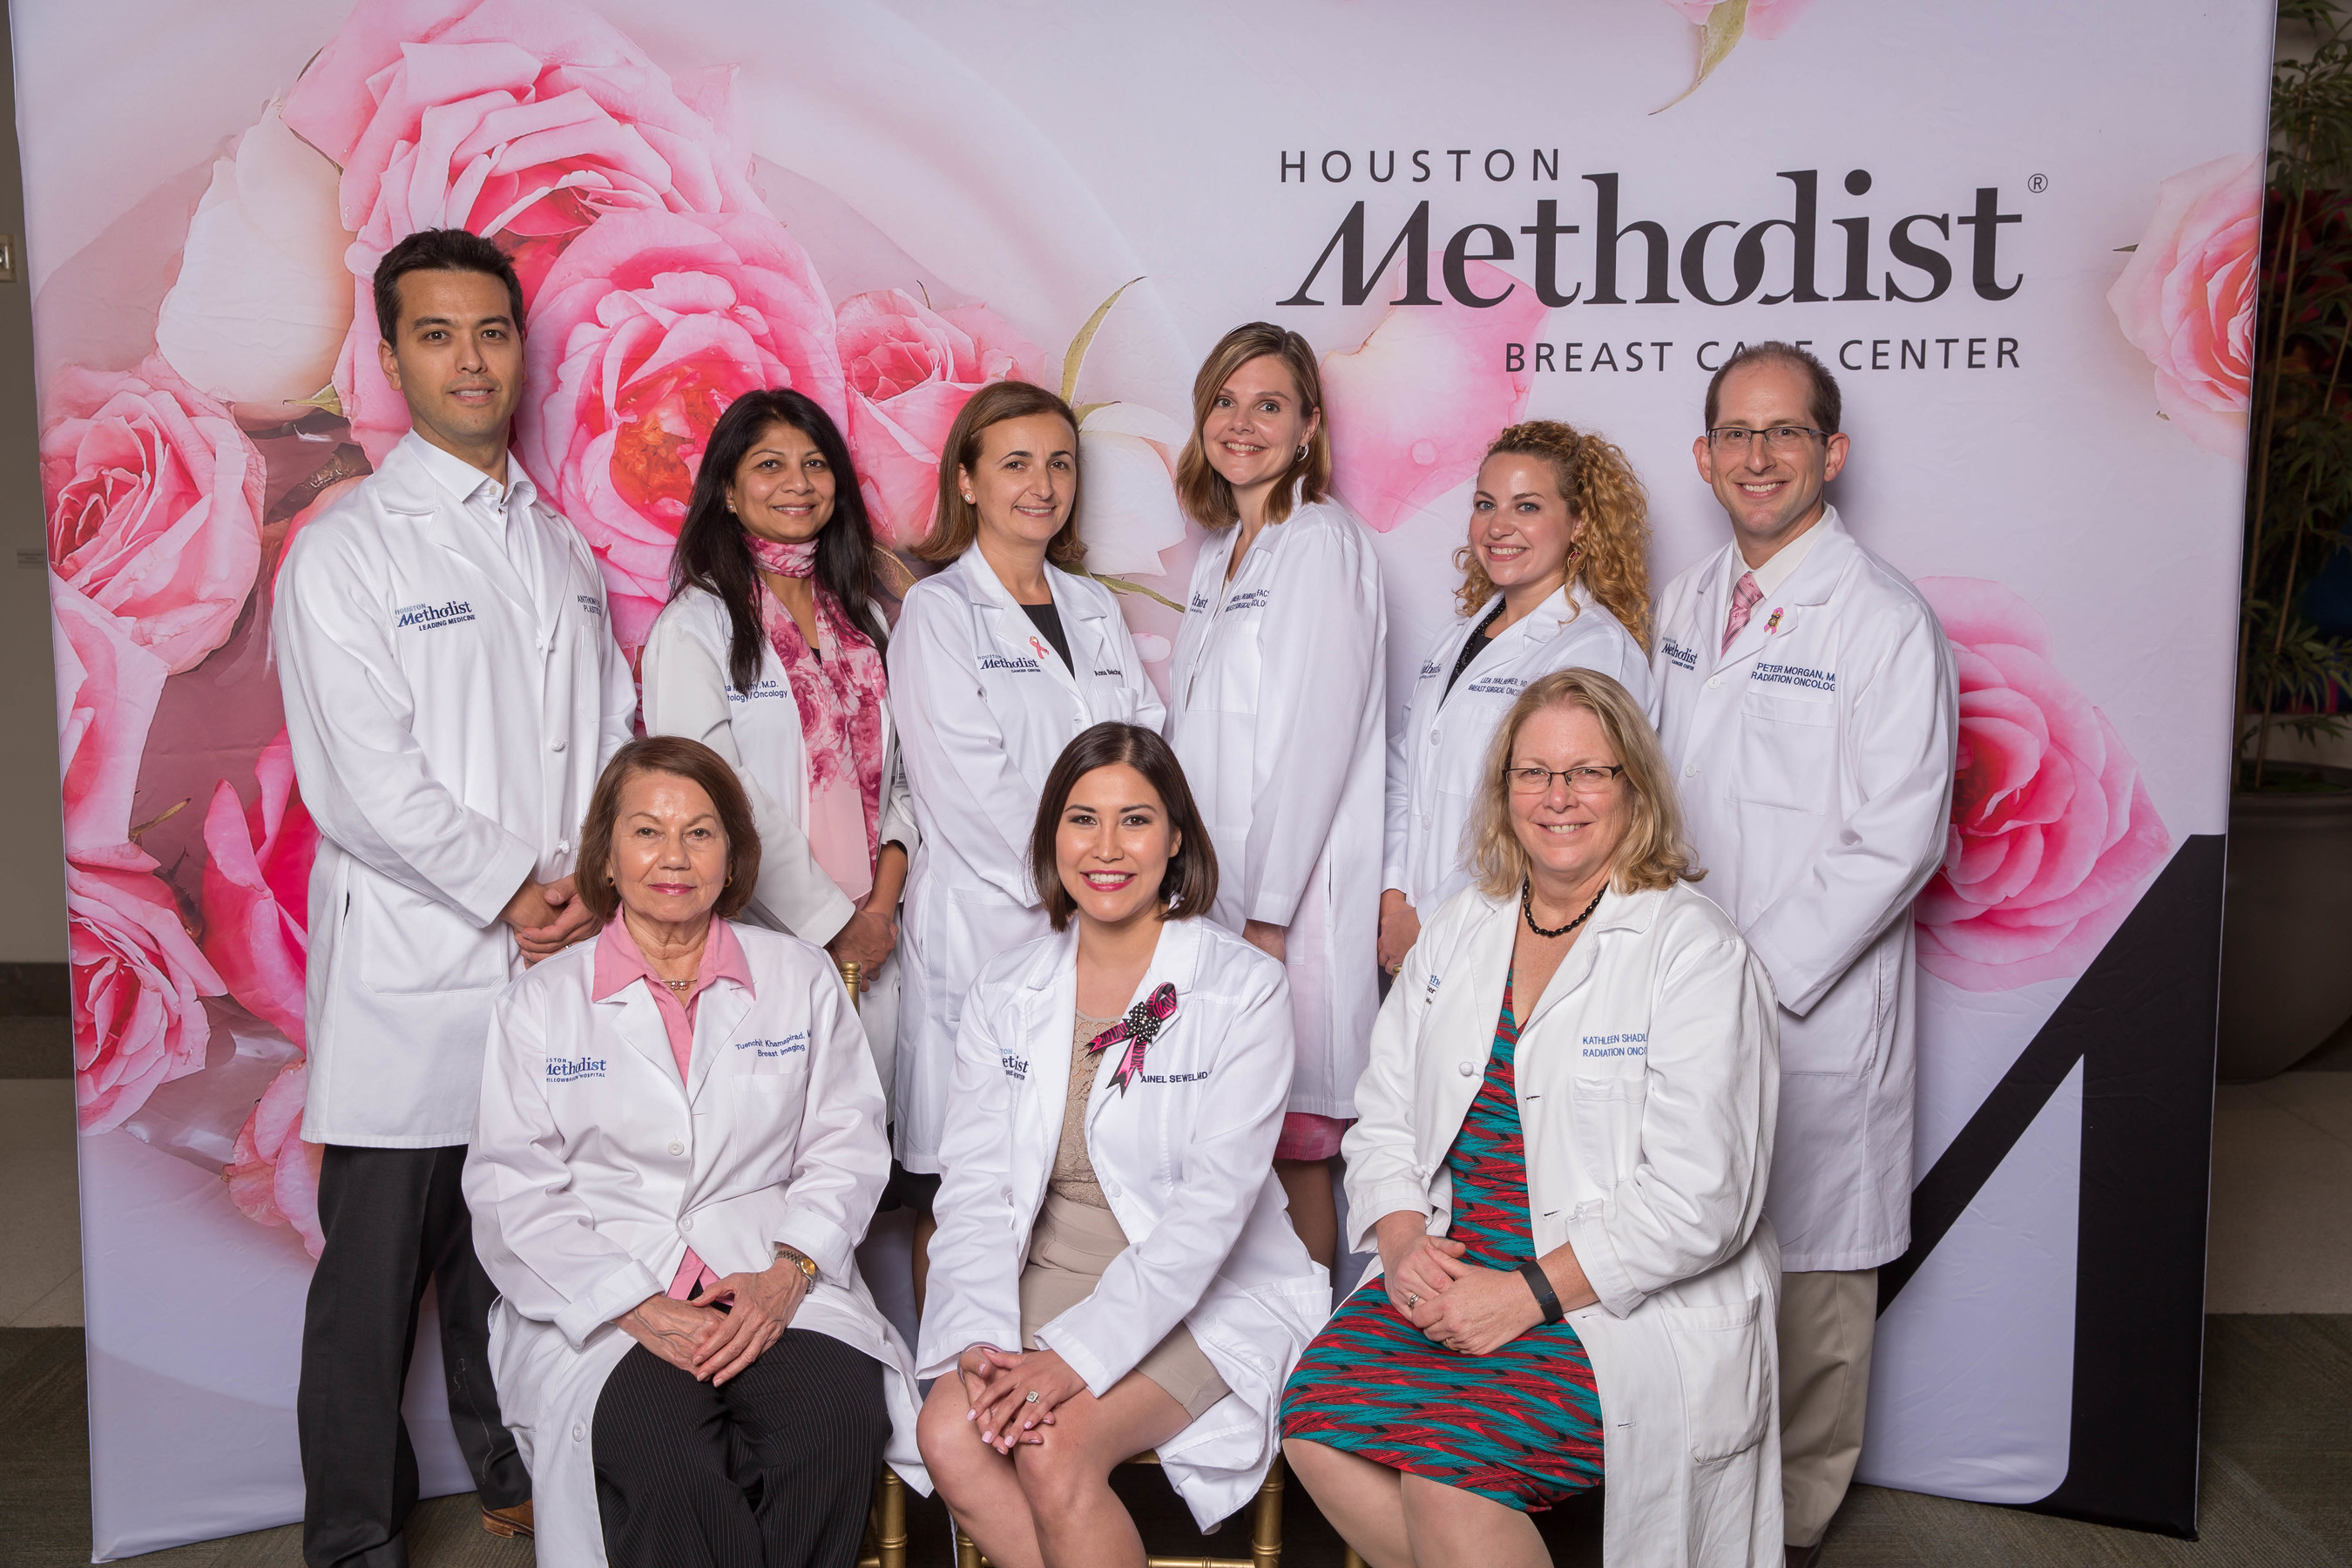 Houston Methodist Breast Care Center at Willowbrook